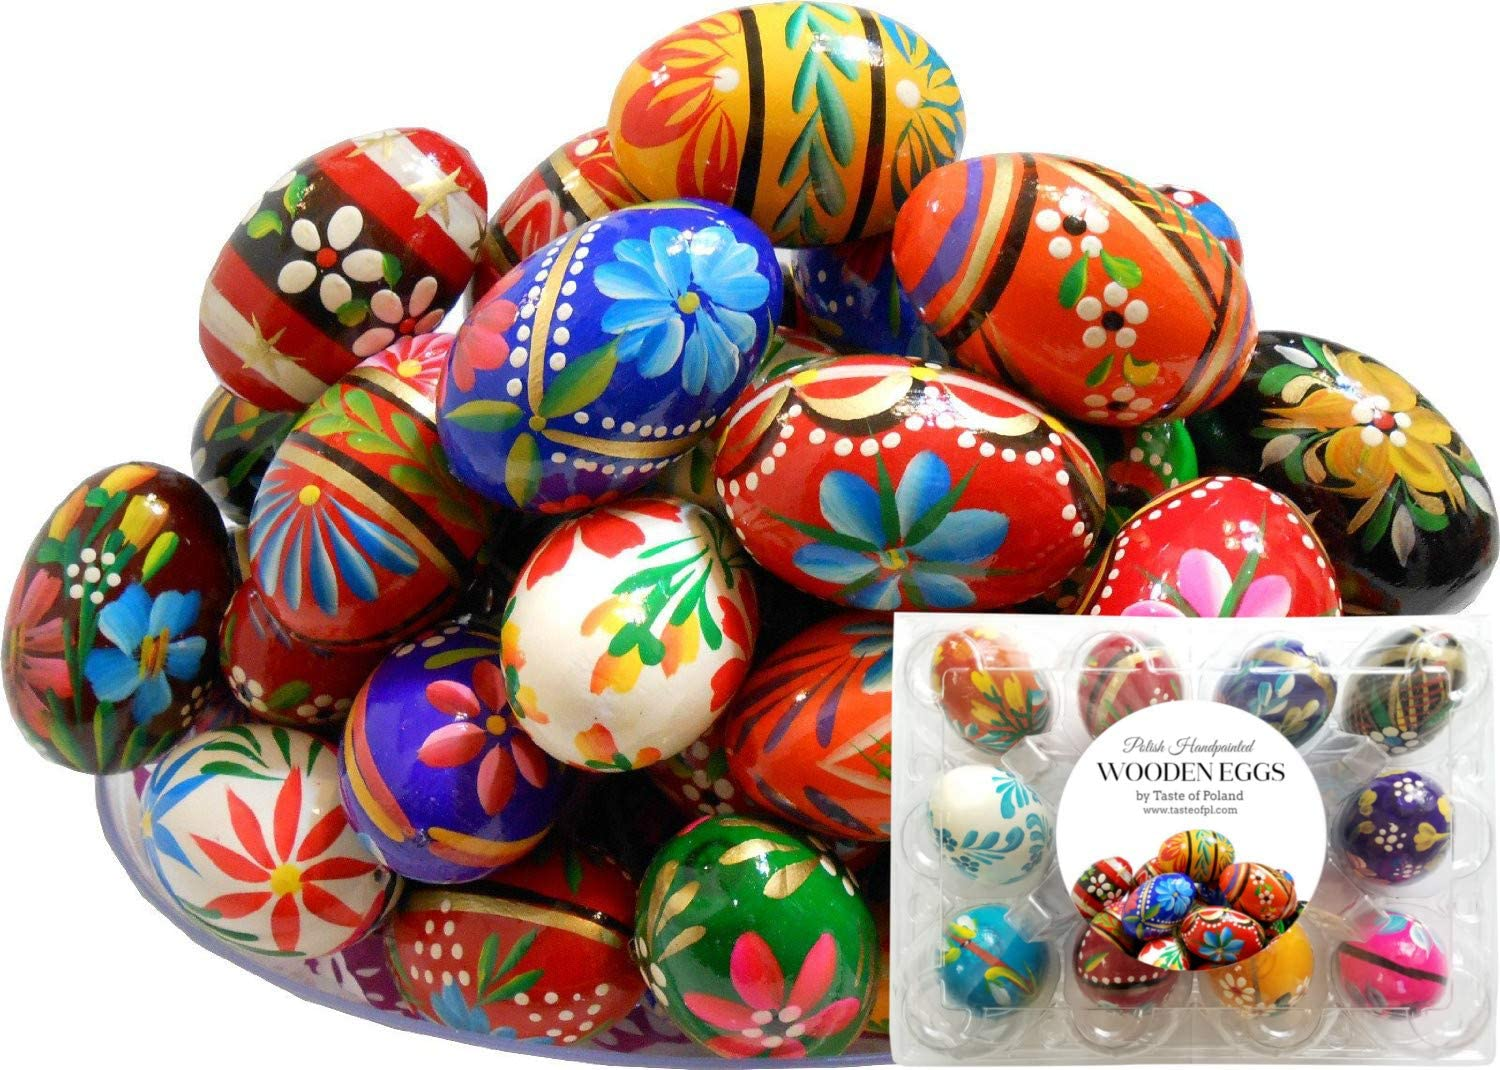 Polish Easter Handpainted Wooden Eggs (Pisanki), Set of 12 in Protective Box